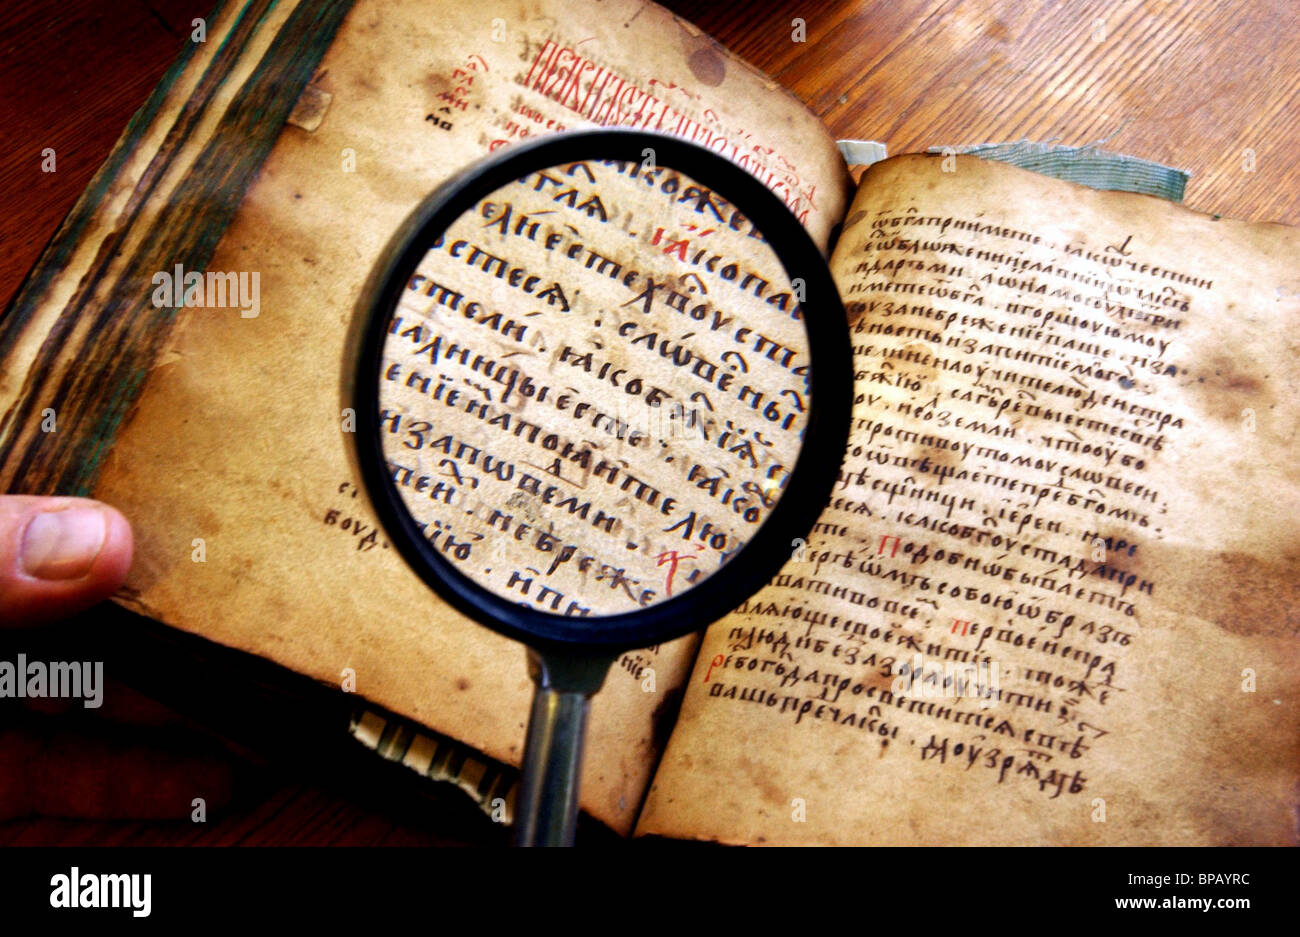 Ancient Russian manuscript dated from 14-15th centuries was found in the family of Old Believers in Siberia - Stock Image